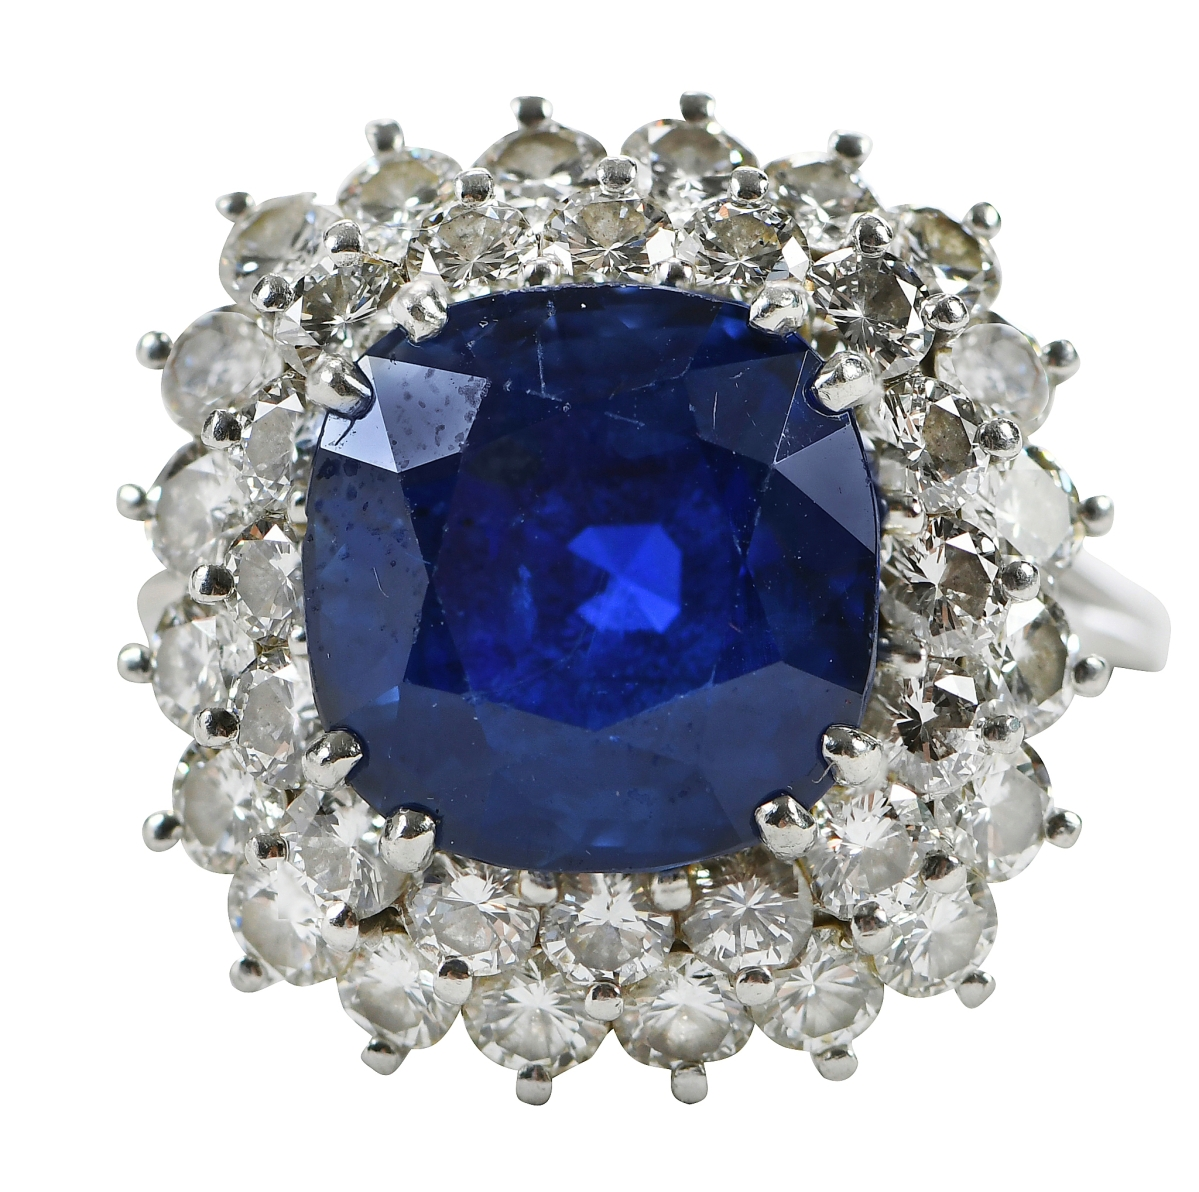 This Ceylon sapphire and diamond ring with cushion cut unheated blue sapphire surrounded by 36 brilliant diamonds led a substantial assortment of jewelry lots and sold to a phone bidder for $51,660 ($10/20,000).